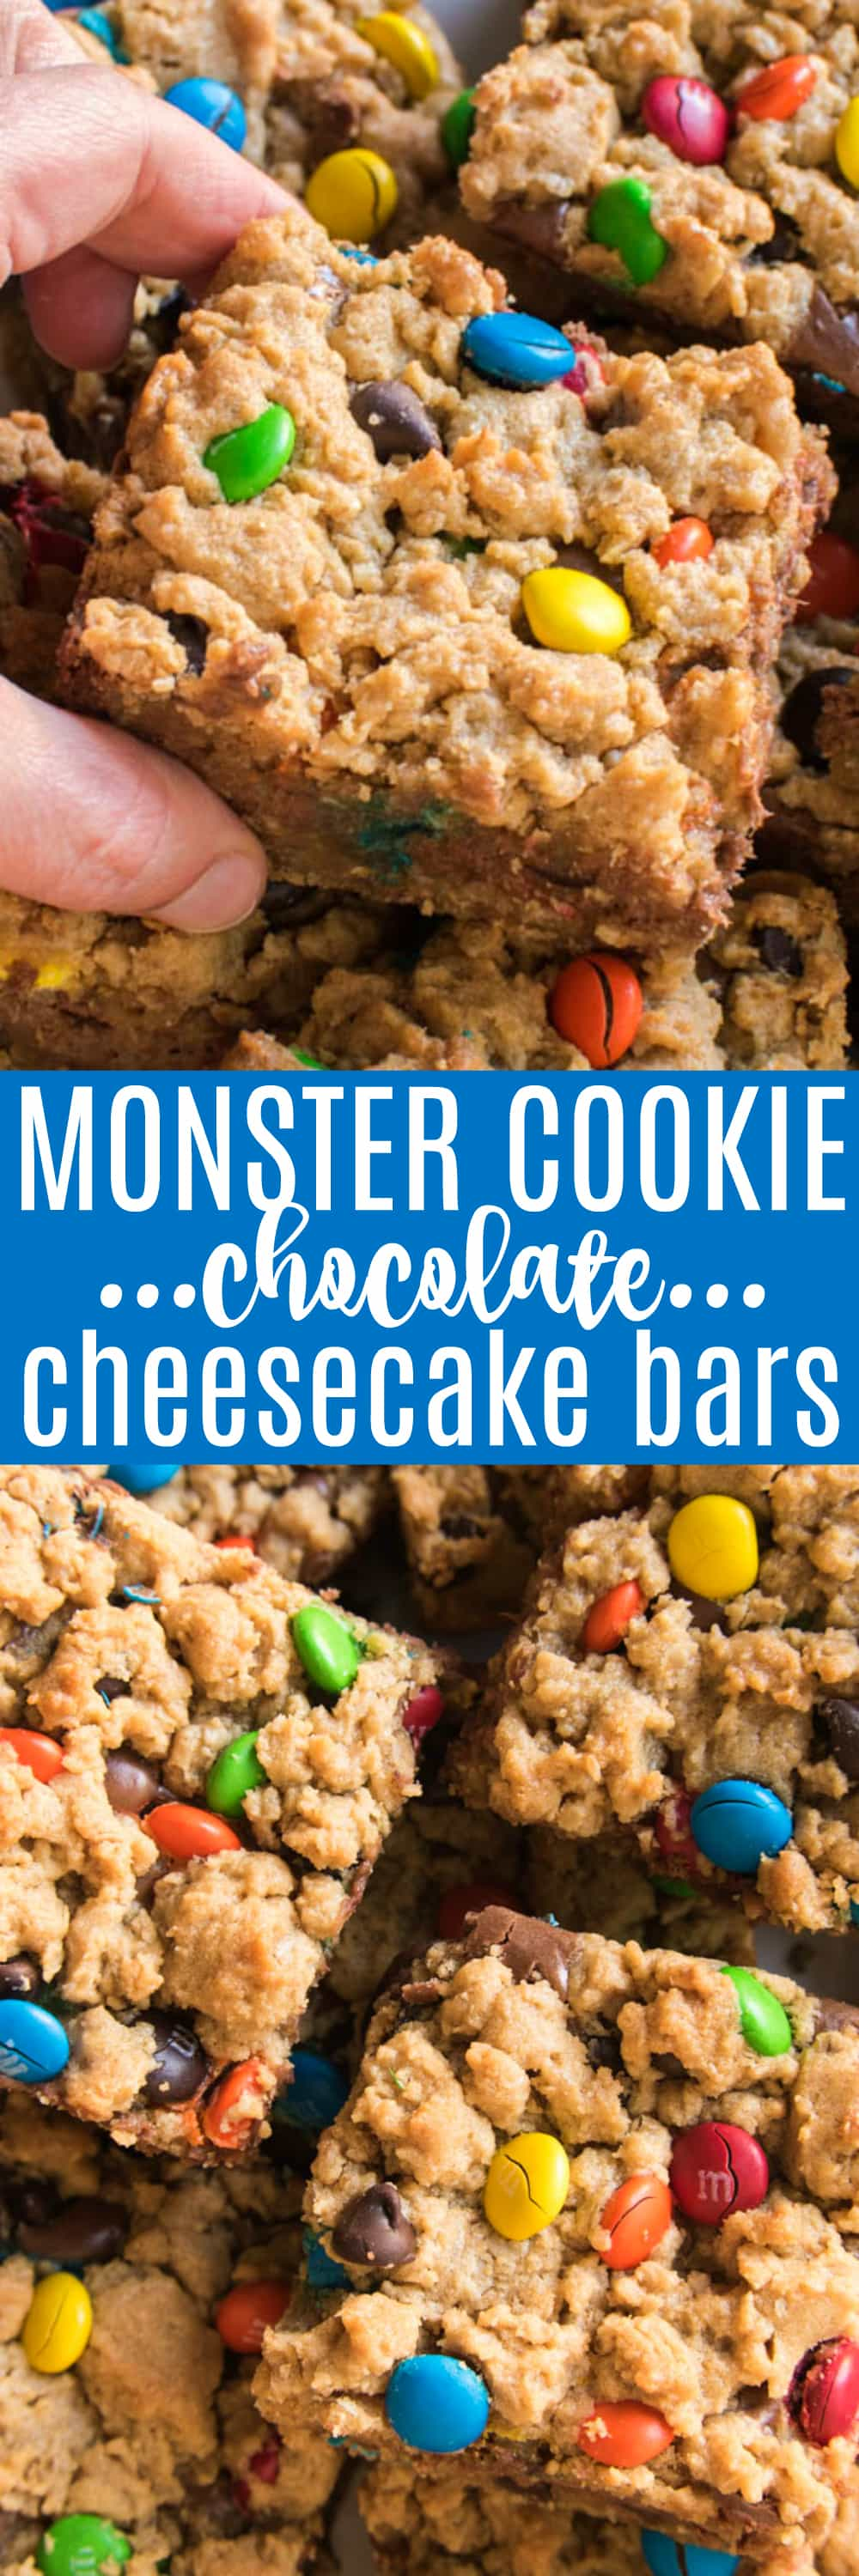 These Monster Cookie Chocolate Cheesecake Bars are the best of both worlds! If you love chocolate, and cookies, and cheesecake, these bars are for YOU! Creamy chocolate cheesecake sandwiched between two delicious layers of yummy monster cookies....these bars are loaded with peanut butter, oatmeal, chocolate chips, m&m's, and so much more. They're easy to make and perfect for feeding a crowd, making them a delicious choice for holidays, birthdays, and parties. Best of all, everyone LOVES them!!